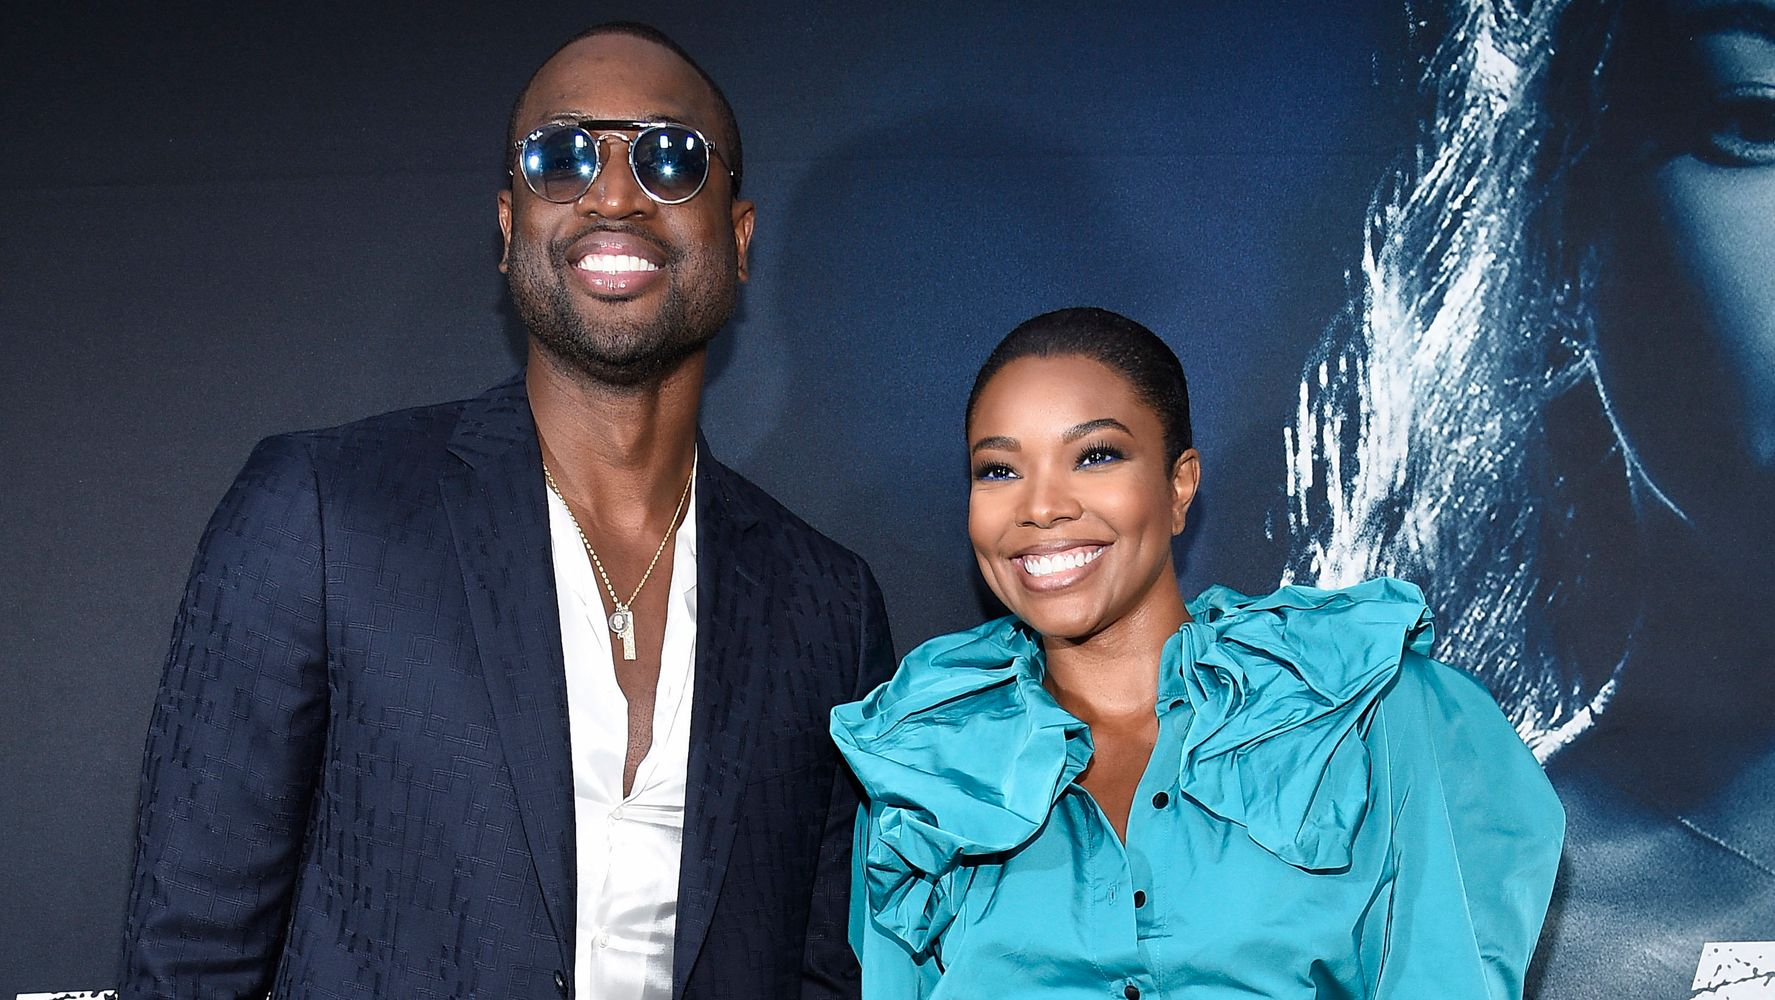 Gabrielle Union And Dwyane Wade's First Christmas With Kaavia James